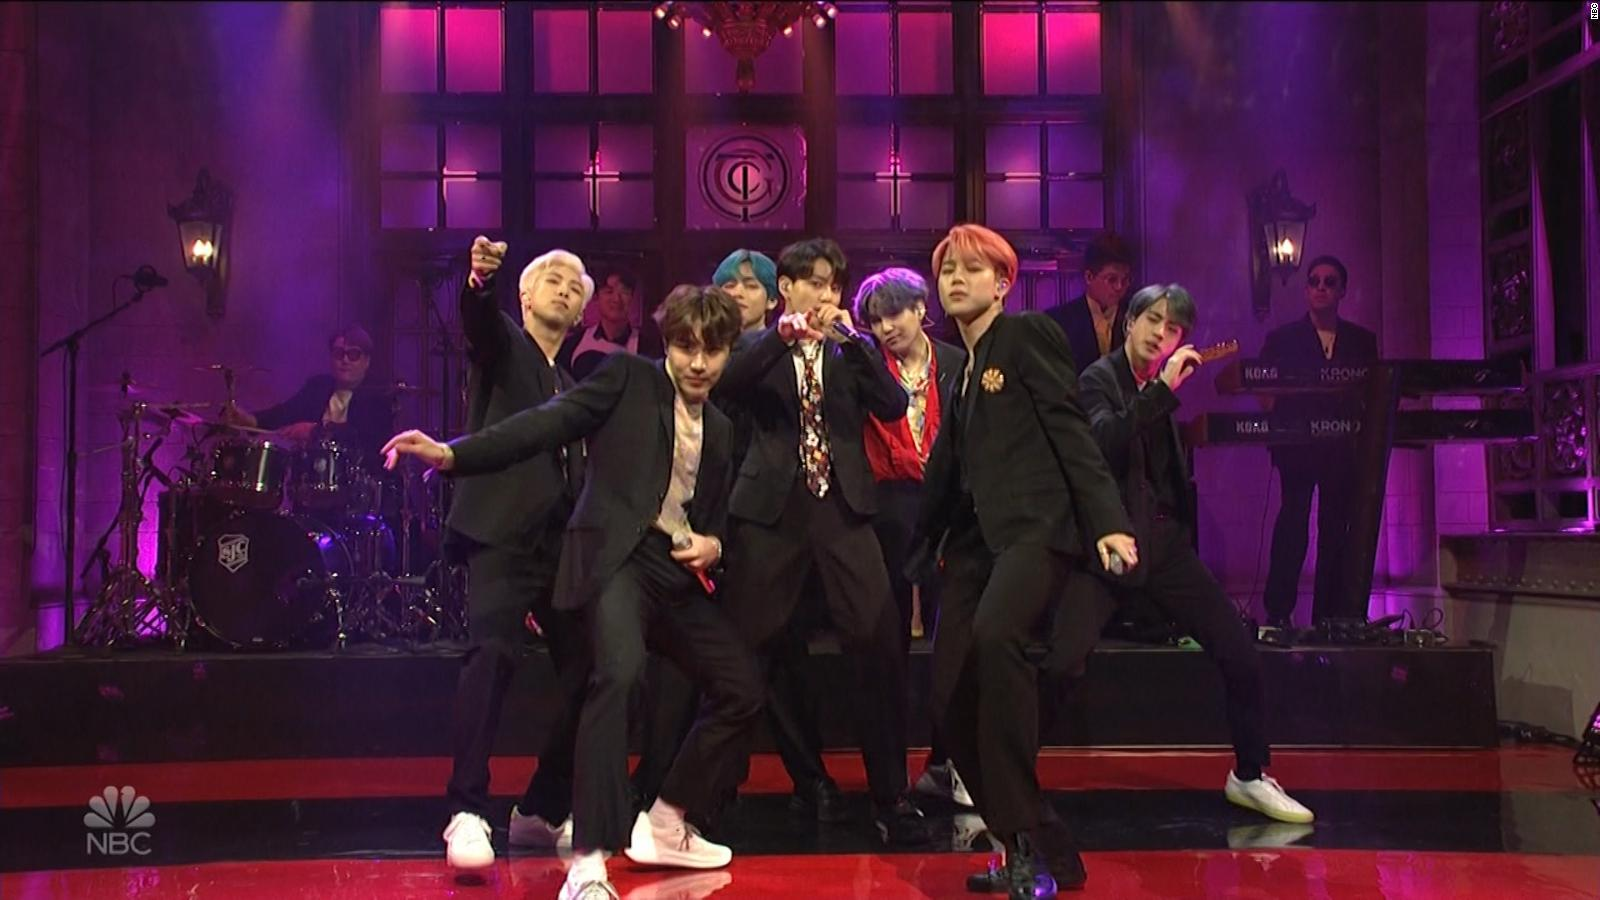 190414005422 bts on saturday night live full 169